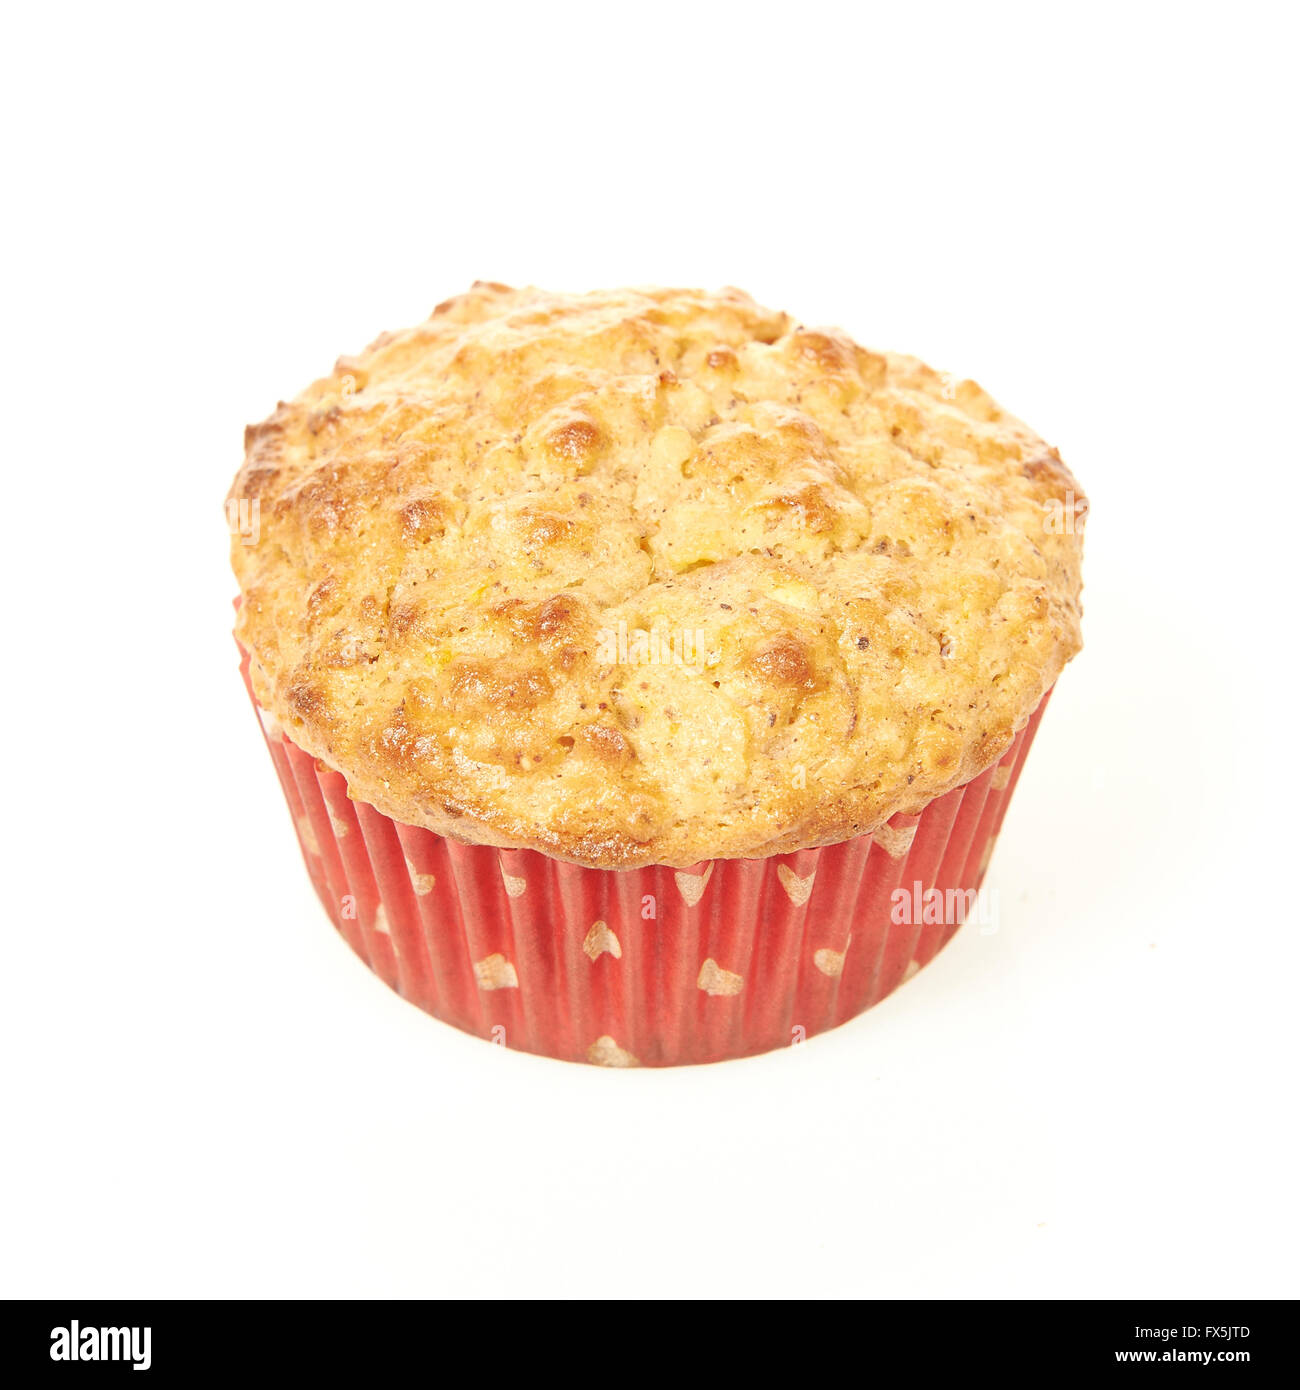 Low calorie muffin isolated on a white background - Stock Image